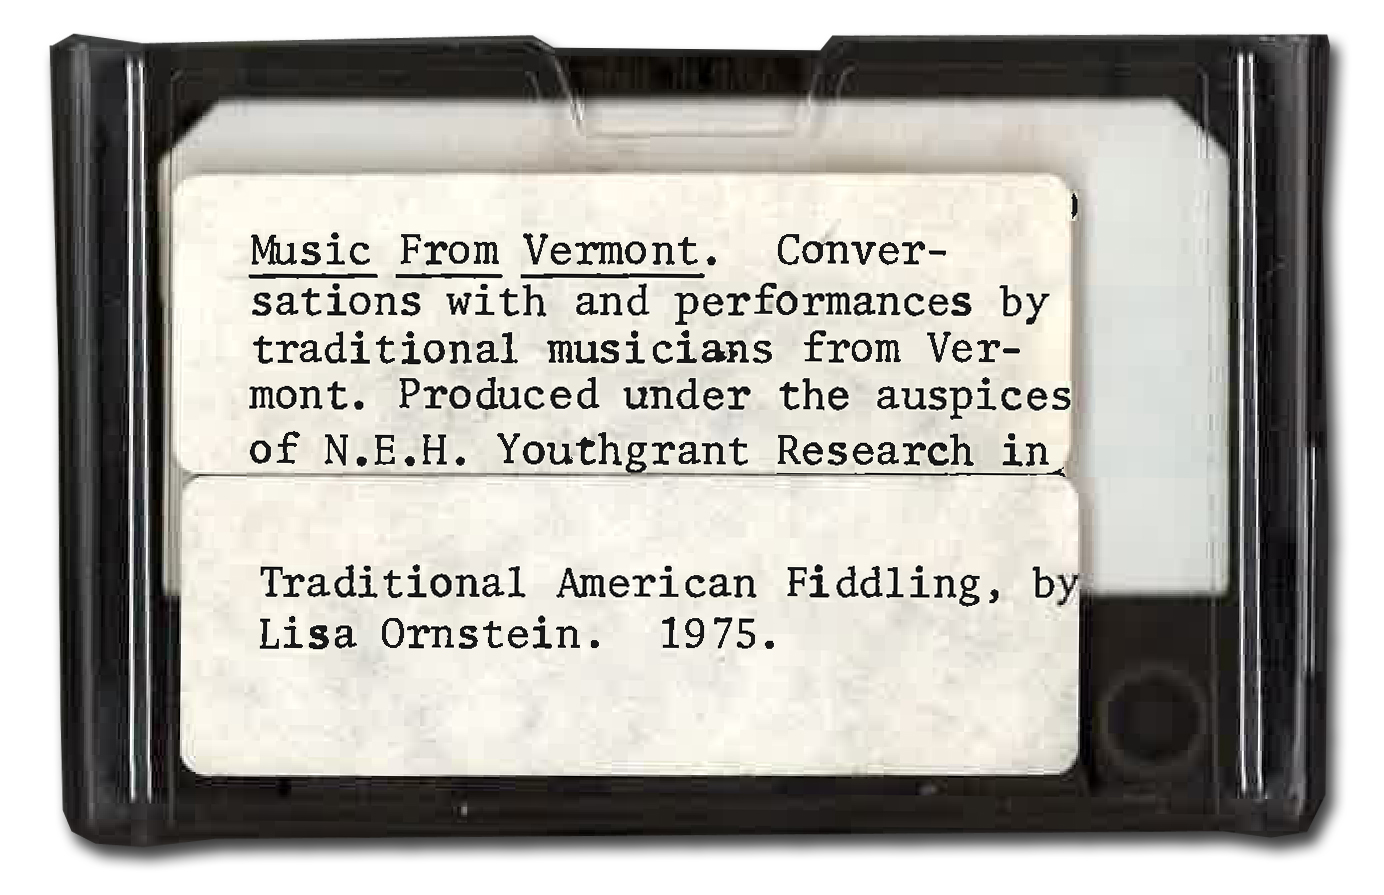 In an ongoing effort to digitize our archive, a recent noteworthy project included 20 cassette tape recordings with Franco-American fiddlers in VT. Above: Image of Cassette